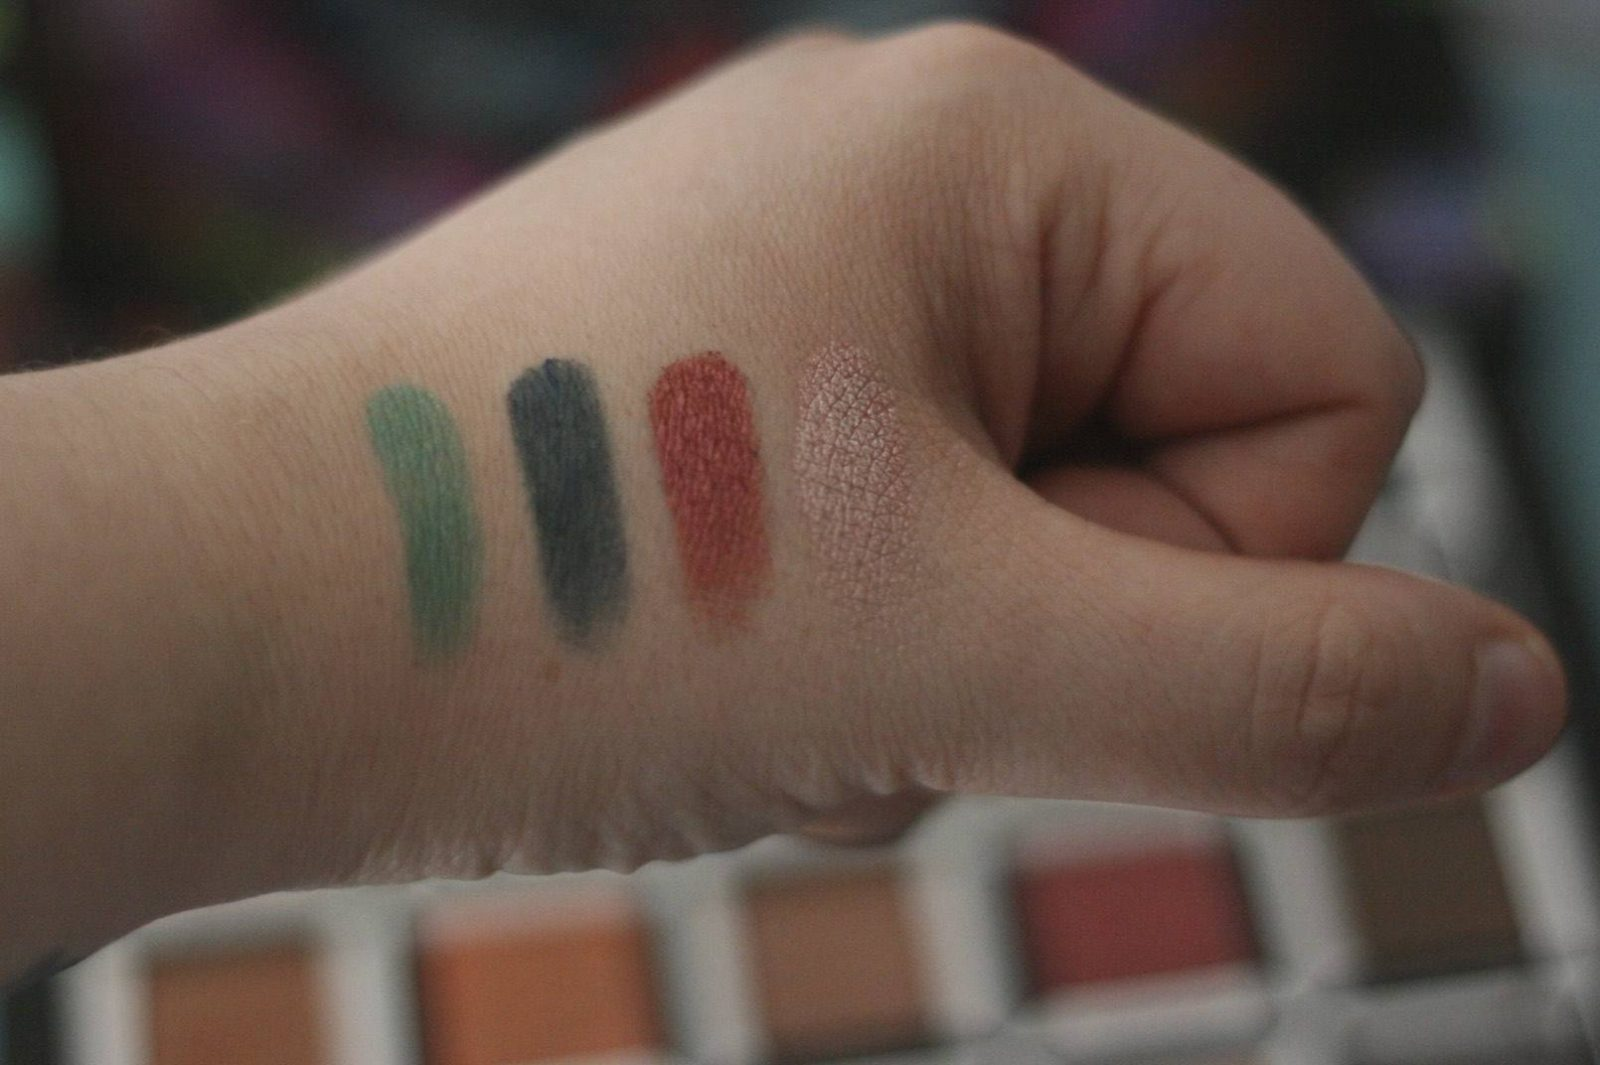 Urban Decay Alice in Wonderland Through the Looking Glass Palette - swatches (Iracebeth)